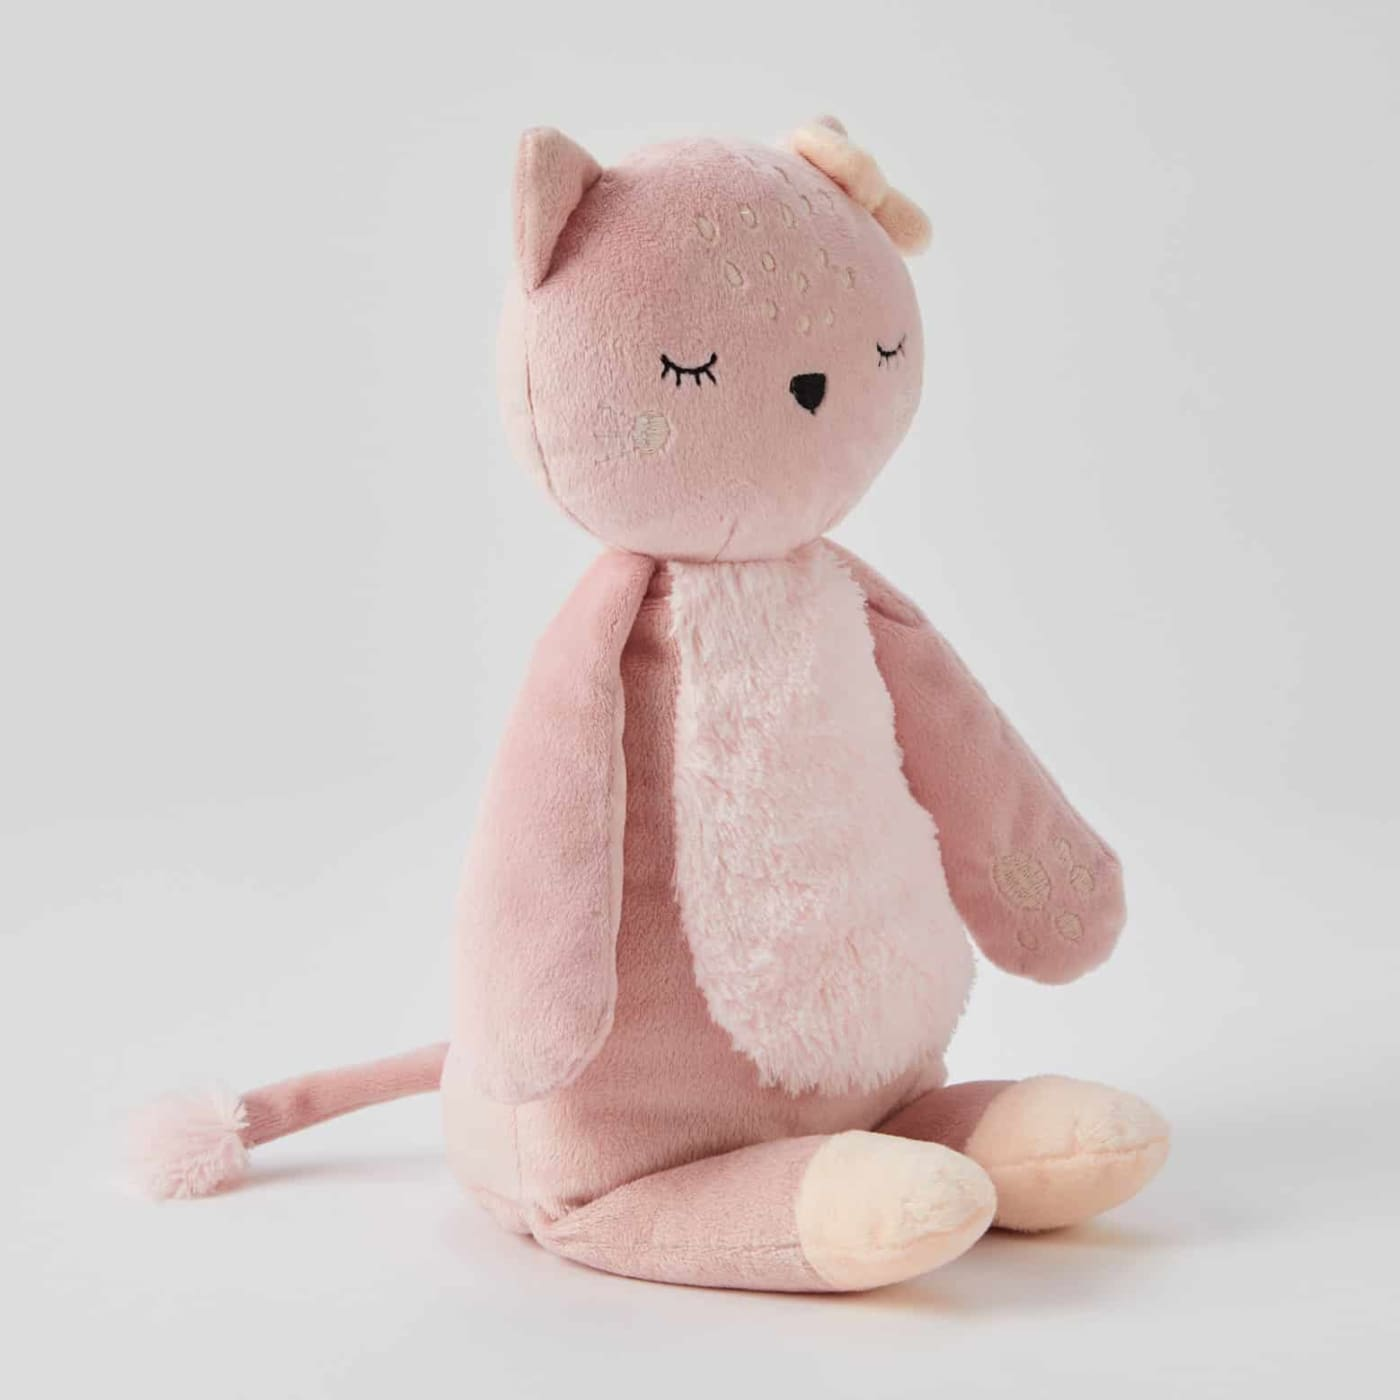 Nordic Kids Plush Toy - Fleur Cat - 38cm / Cat - TOYS & PLAY - PLUSH TOYS